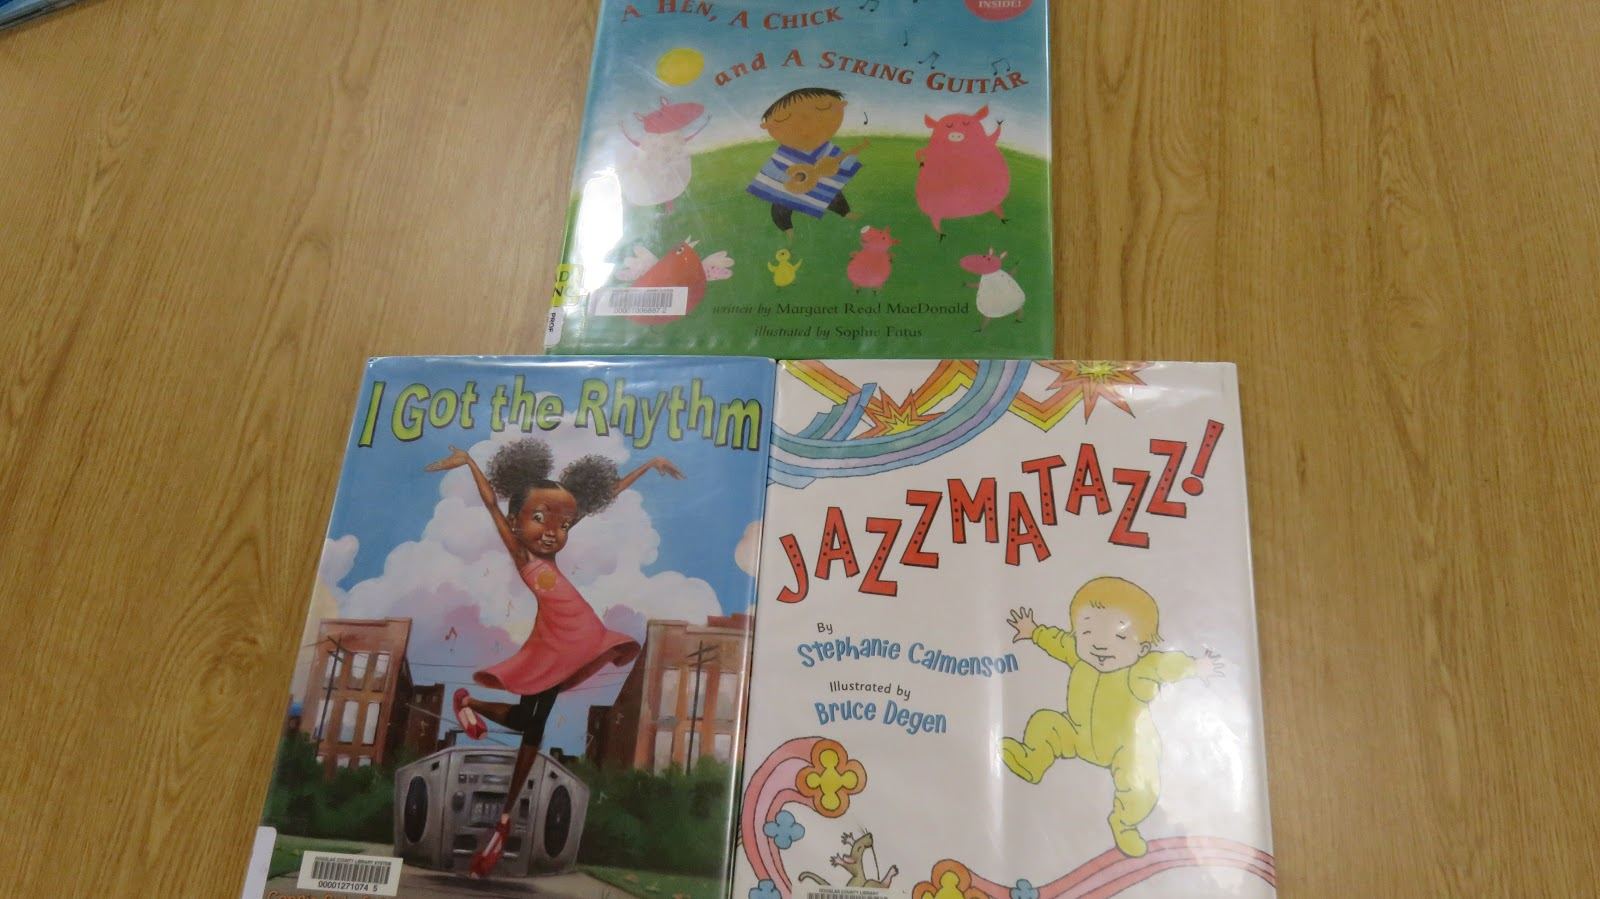 Jazzmatazz! by Stephanie Calmenson (JE CAL) A Hen A Chick and A String Guitar by Margaret Read MacDonald (PROF JE MAC). Craft Paper Plate Shakers & Previous HDQ Storytimes